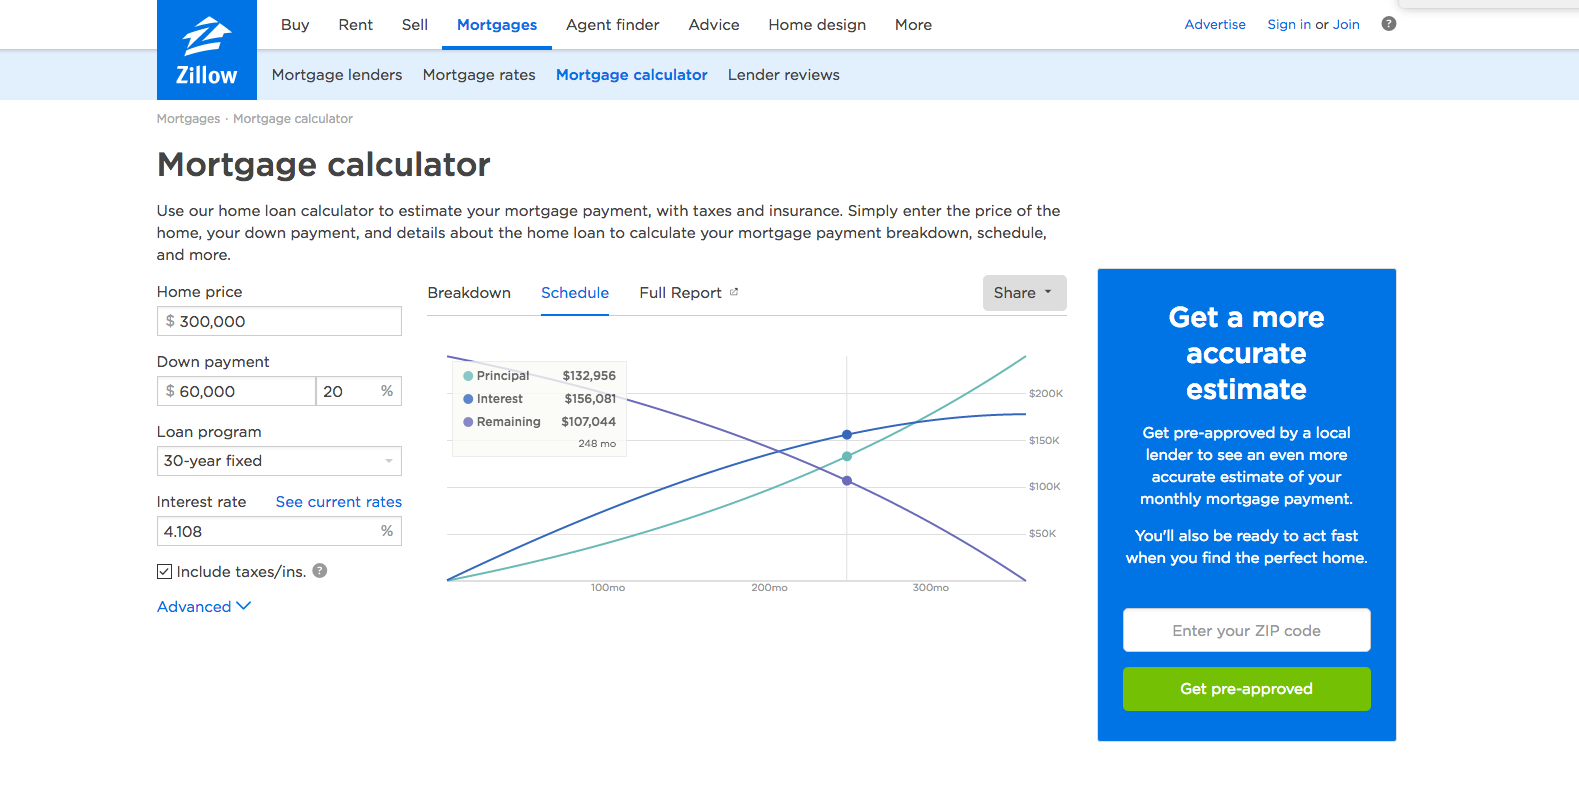 Zillow Mortgage Calculator HttpsWwwZillowComMortgage